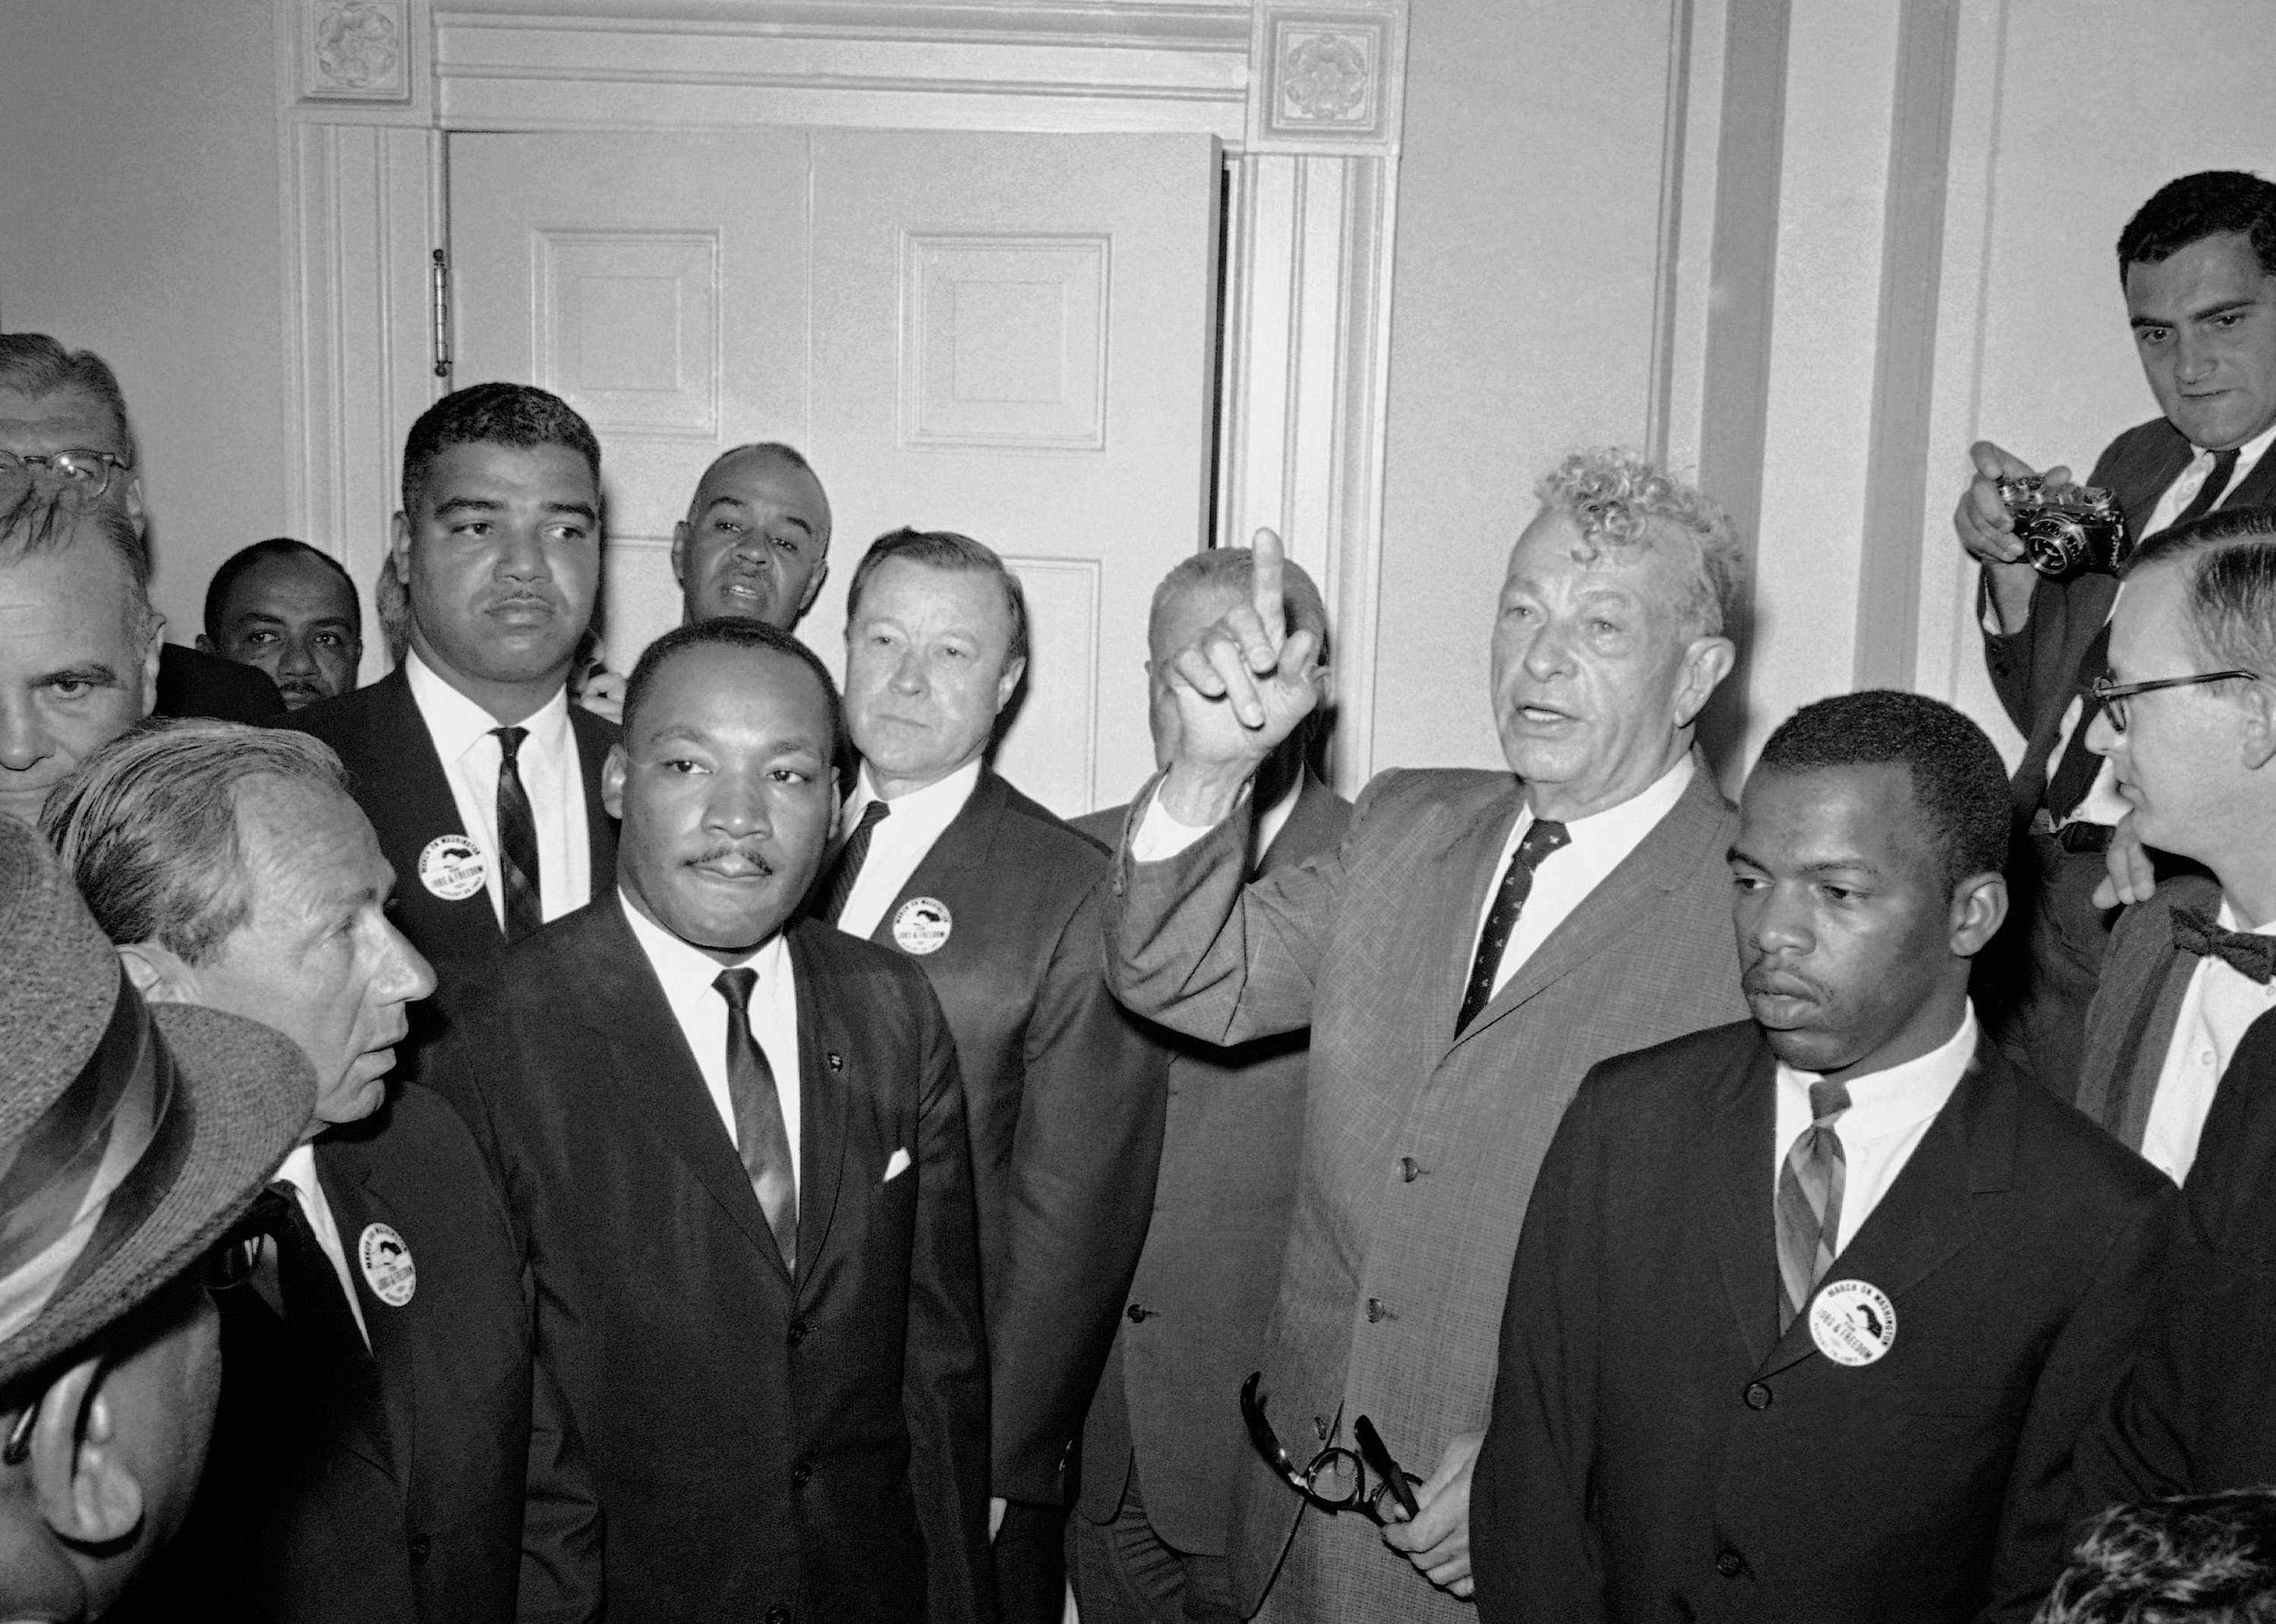 Leaders of the March on Washington stand with Illinois Sen. Everett Dirksen, center right, during a visit to the Capitol on Aug. 28, 1963. From left are Whitney Young, National Urban League; Martin Luther King Jr., Southern Christian Leadership Conference; Roy Wilkins, NAACP, behind King; Walter Reuther, United Auto Workers president; Dirksen and John Lewis, Student Non Violent Coordinating Committee. (AP Photo)